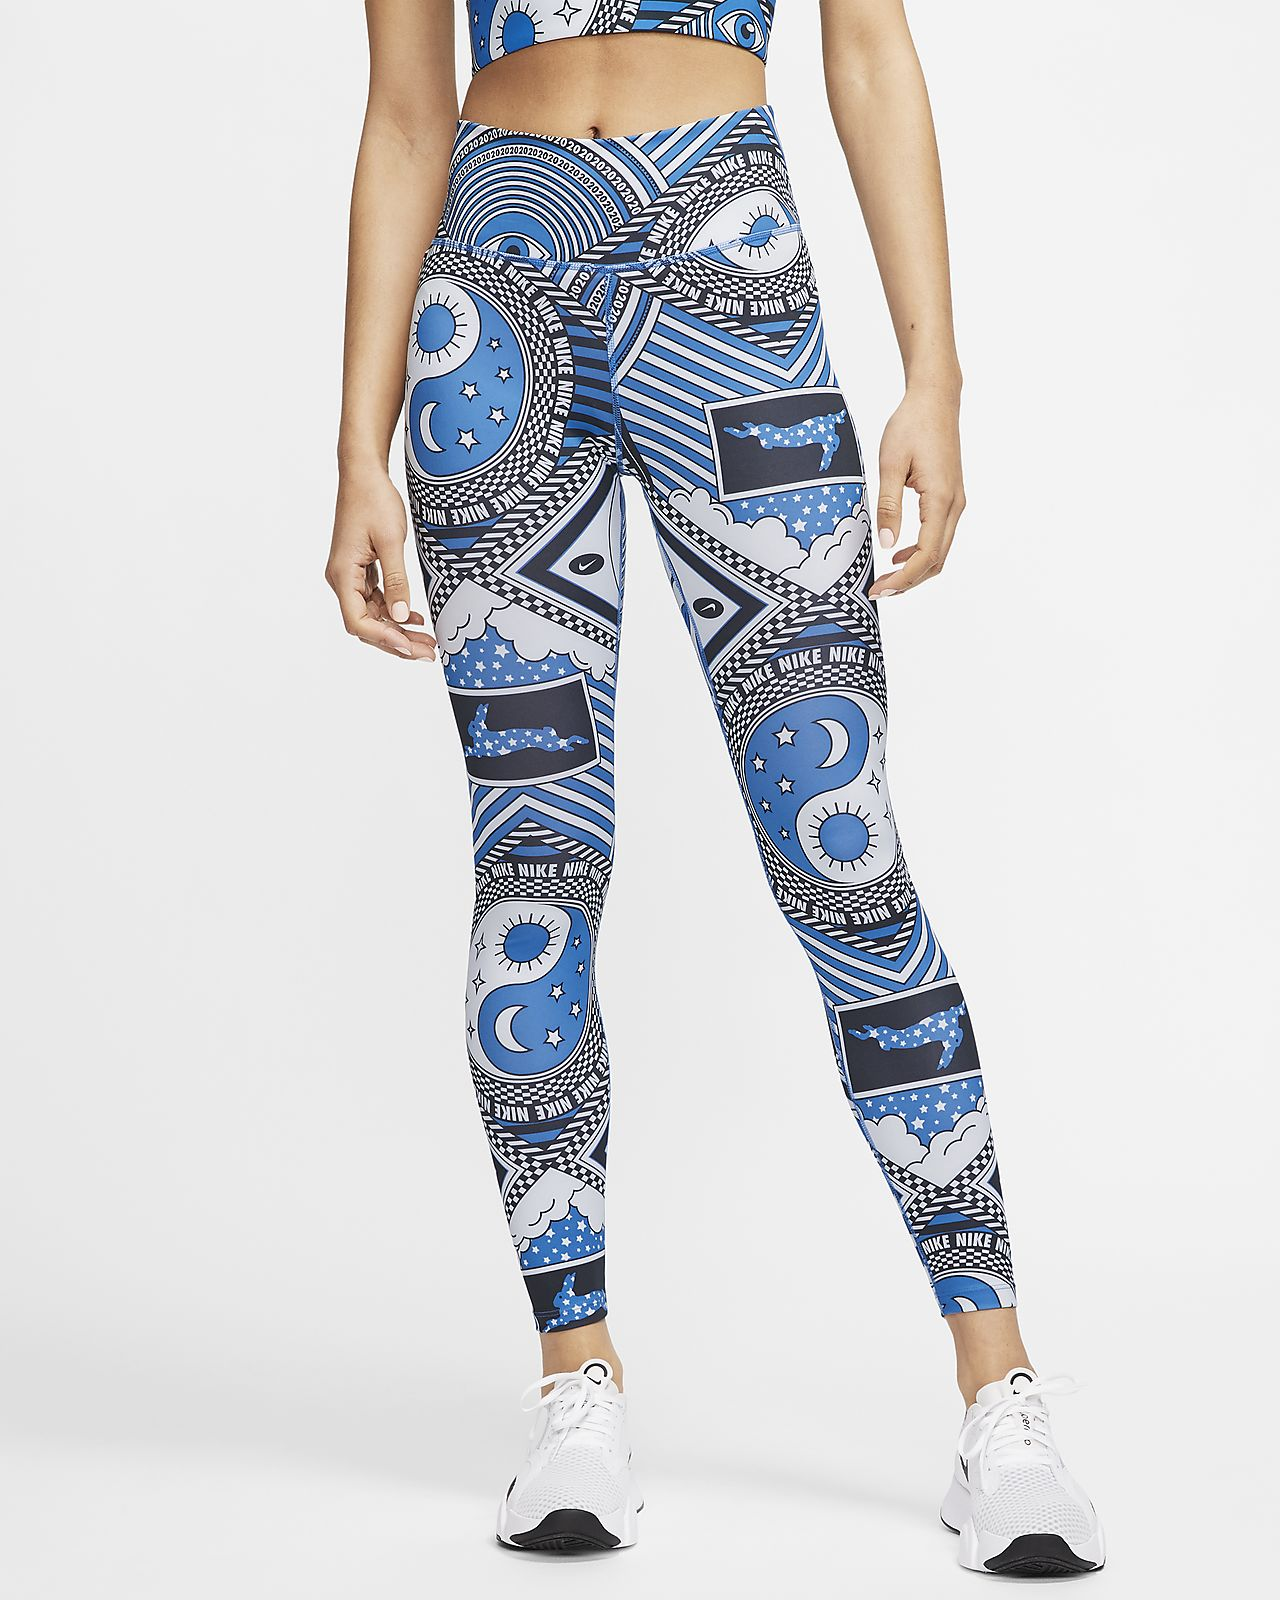 Nike One Women's Mid-Rise 7/8 Printed Tights